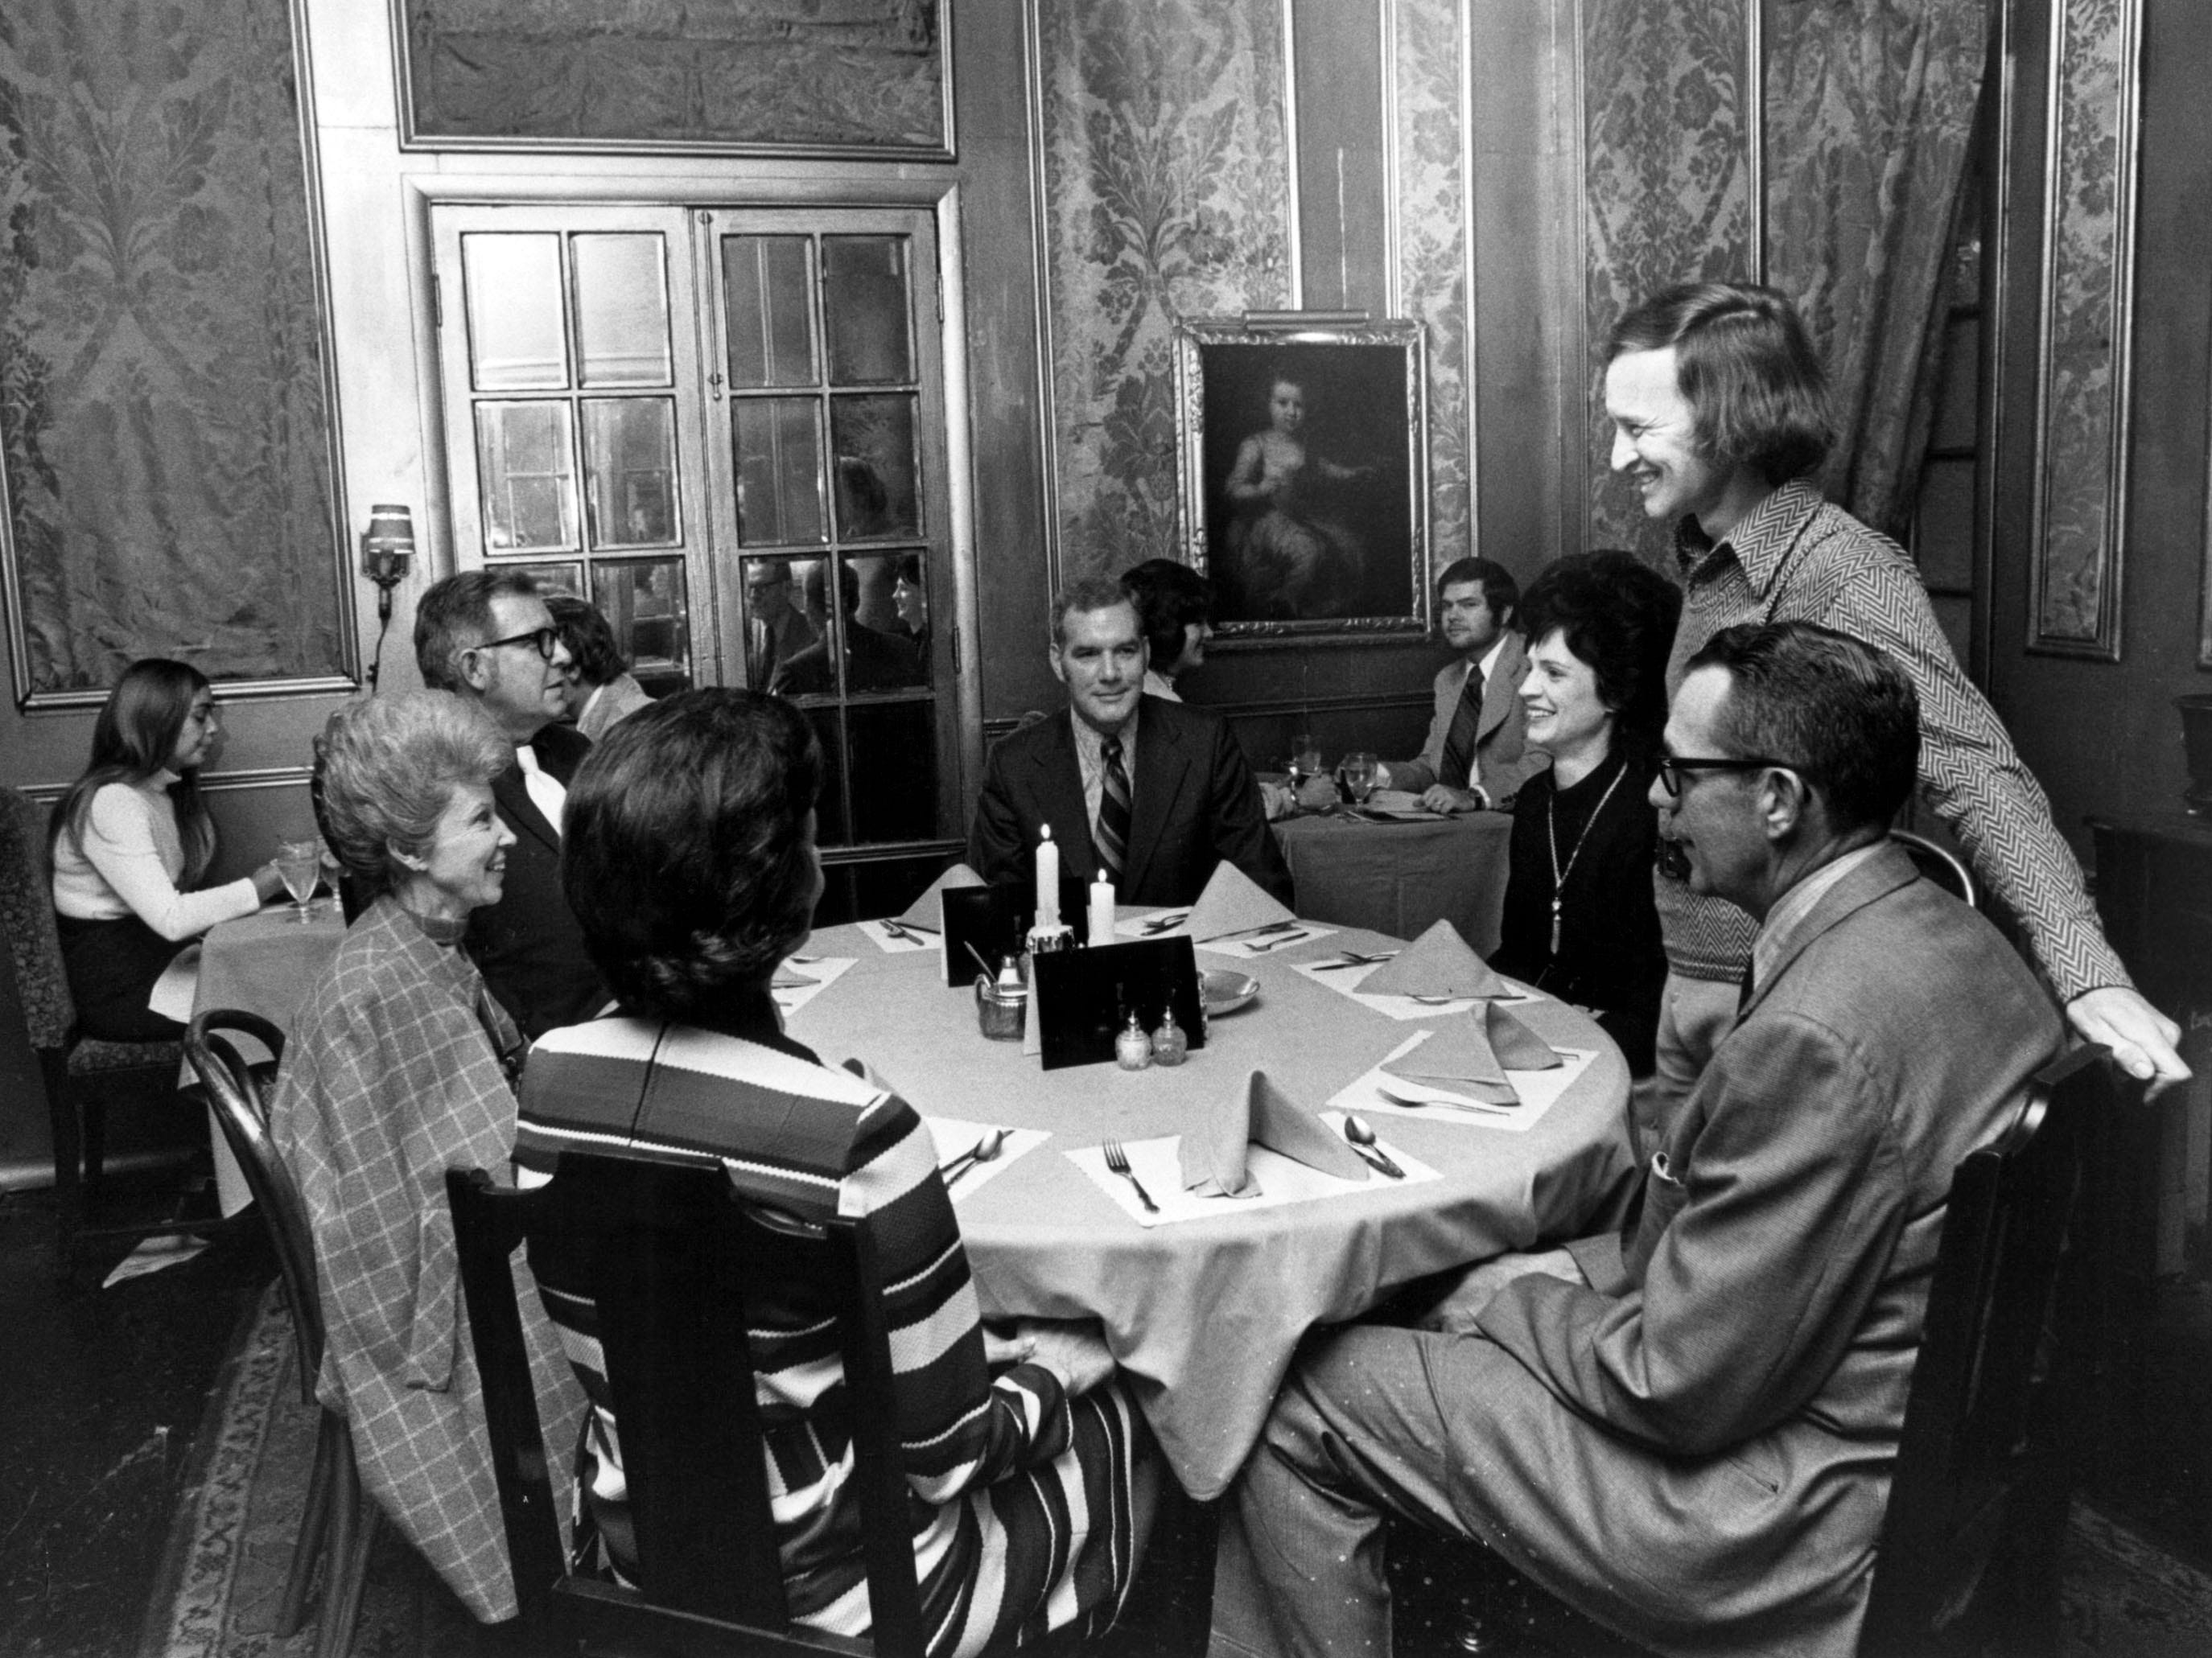 Kristopher Kendrick, co-owner of The Orangery, stops by a table to chat with (from his left, clockwise) Mr. and Mrs. Robert Grace, Mr. and Mrs. S.B. Weatherspoon Jr., all of Nashville, and Mr. and Mrs. Ben Rechter of Knoxville on Jan. 29, 1972.